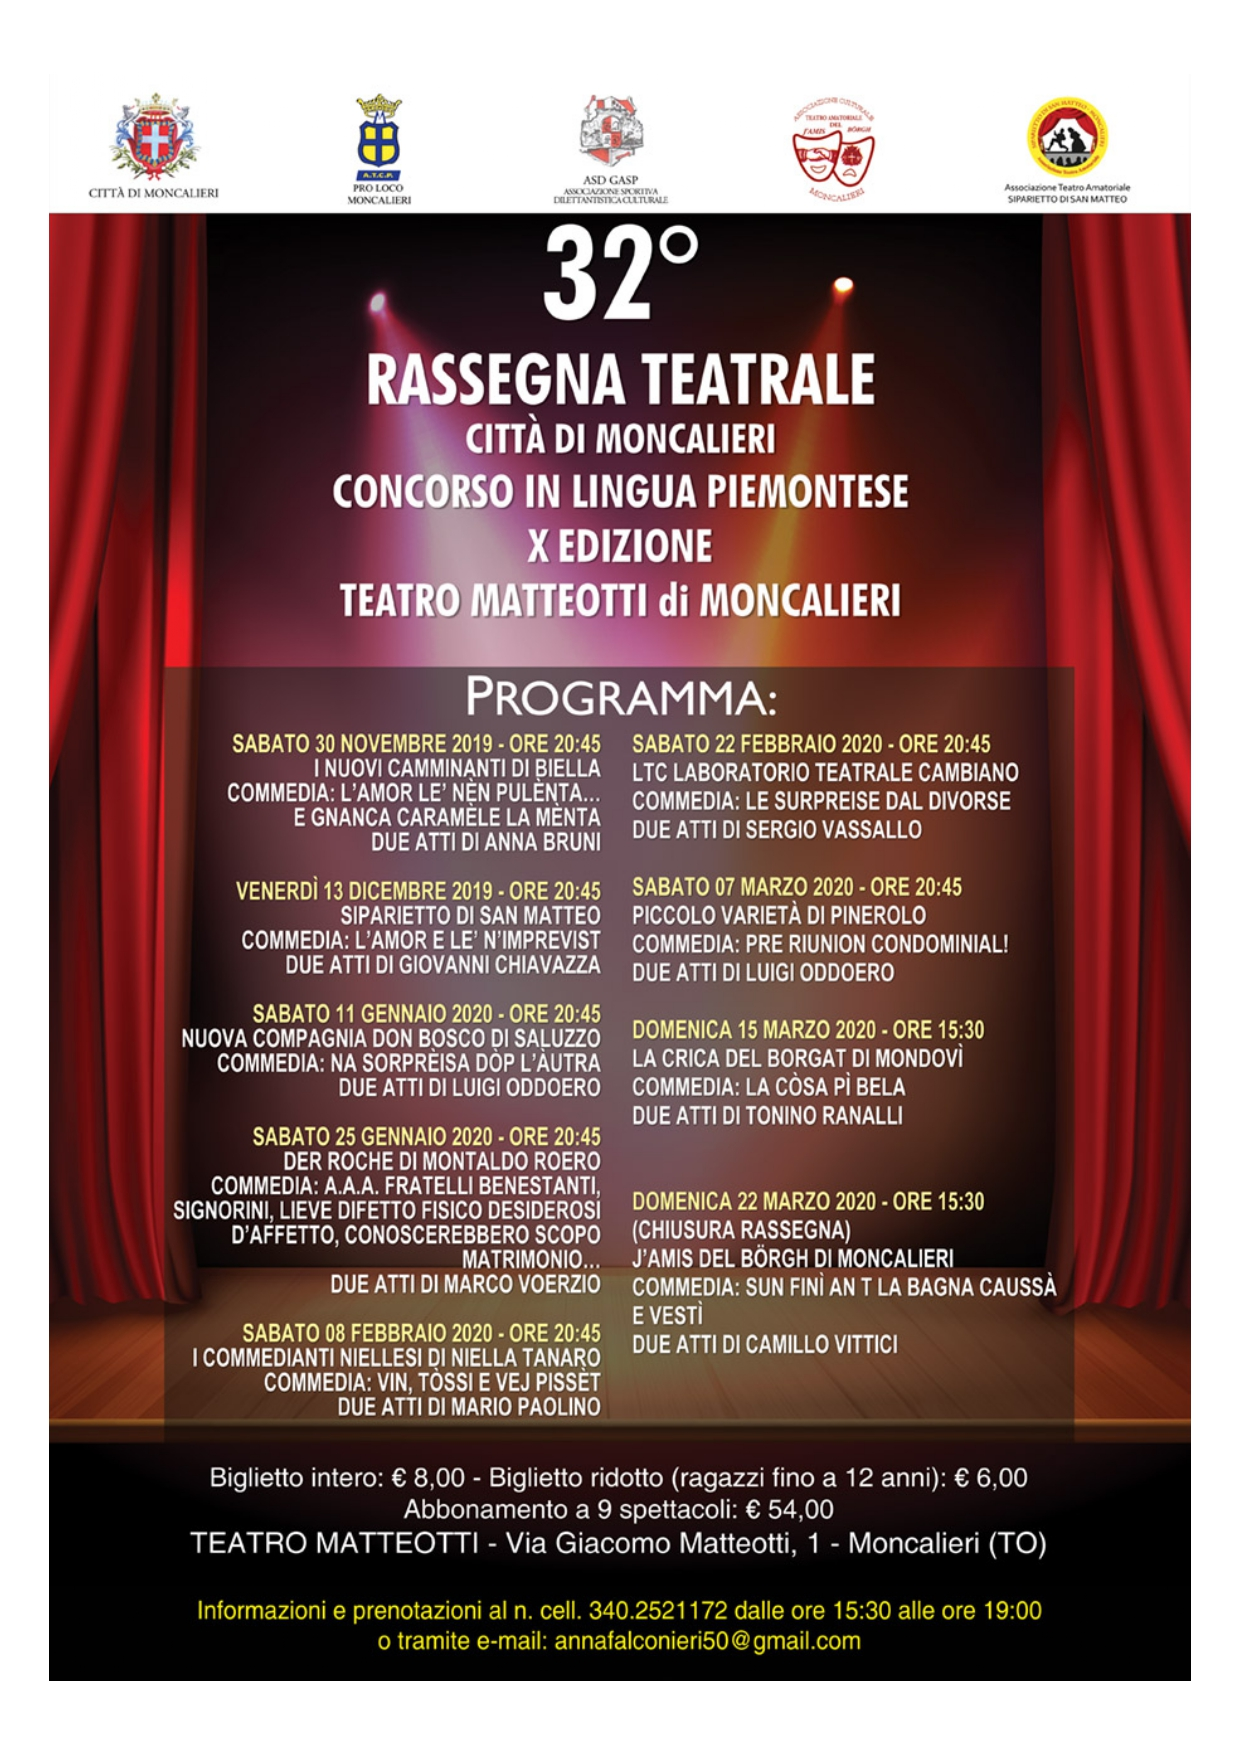 XXXII RASSEGNA TEATRALE DIALETTALE - L'AMOR E LE' N'IMPREVIST